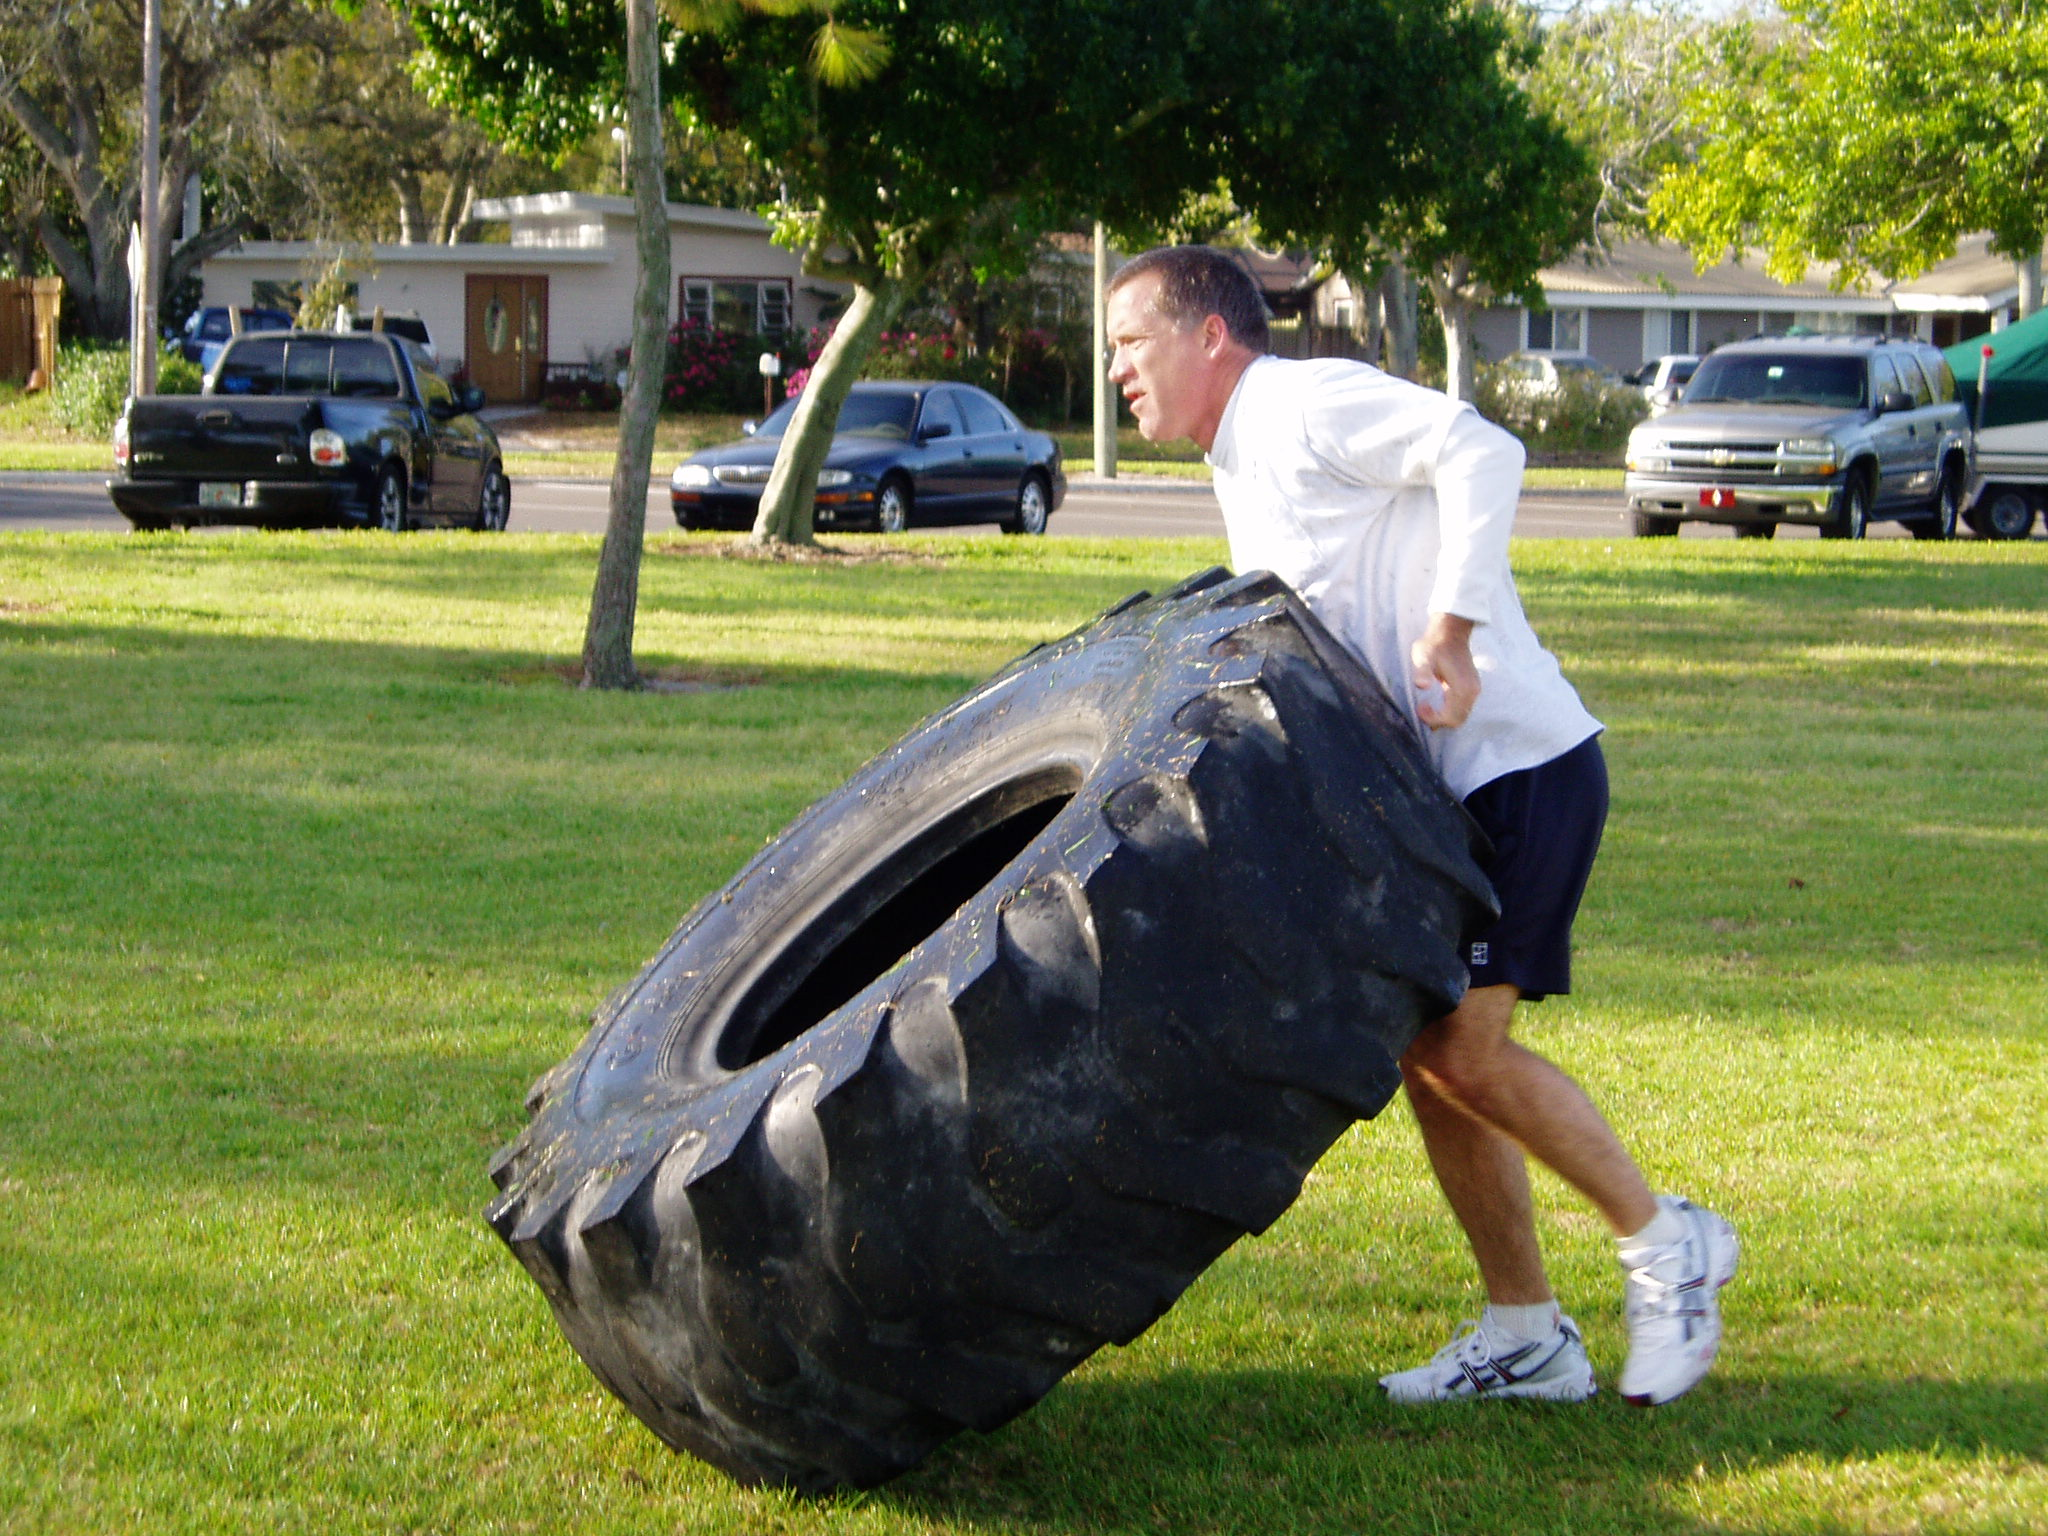 40 lb sandbags old tires and empty kegs the exercise equipment an example of strength camp fitness great for leg strength and upper body fitness